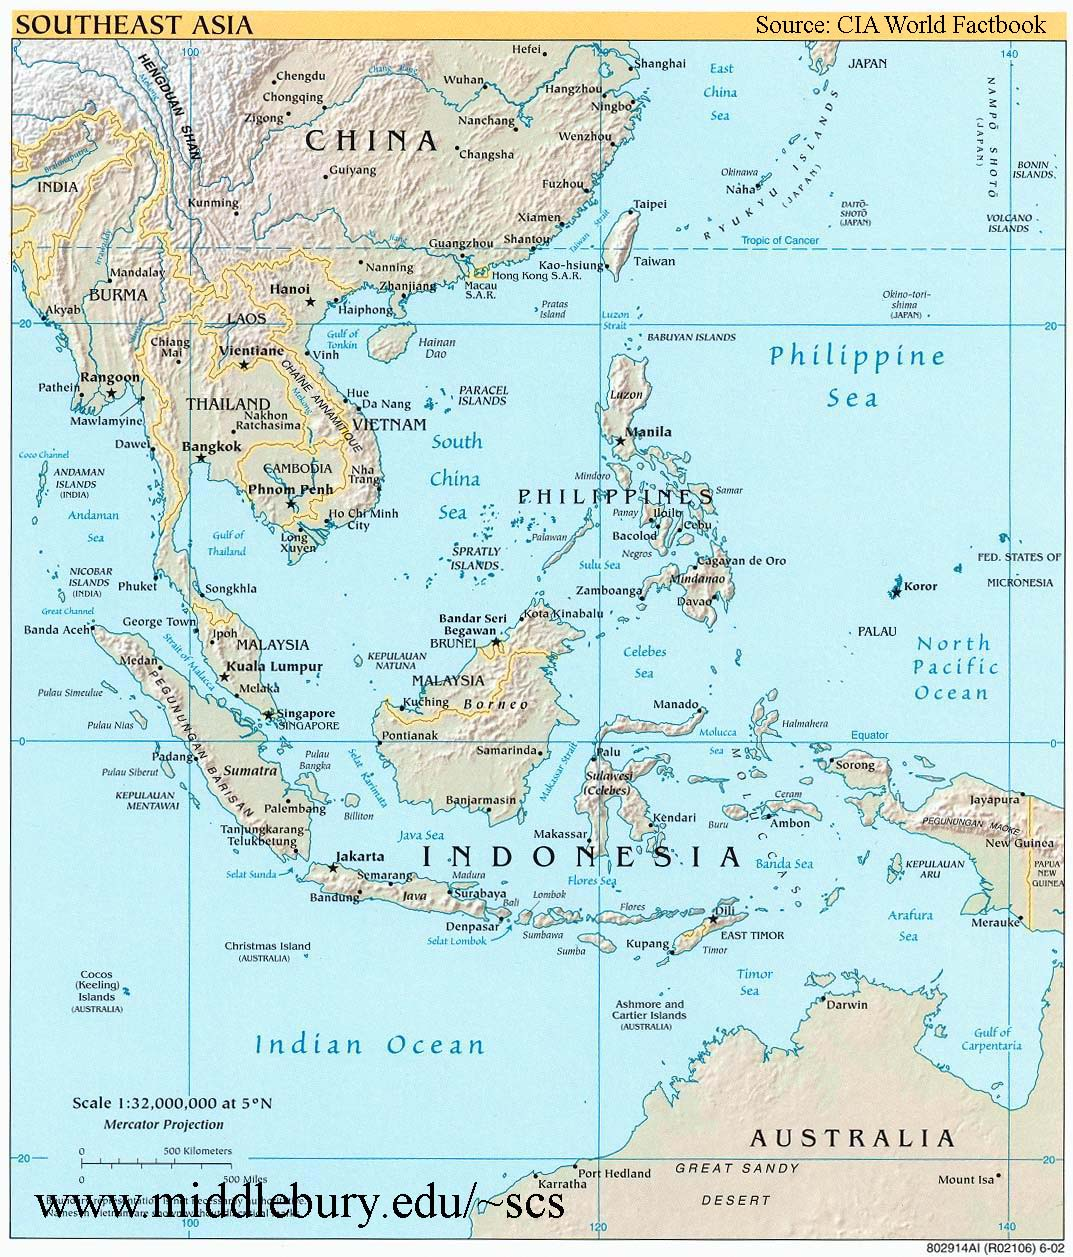 Map Of Asia Japan And China.Legal And Political Maps The South China Sea